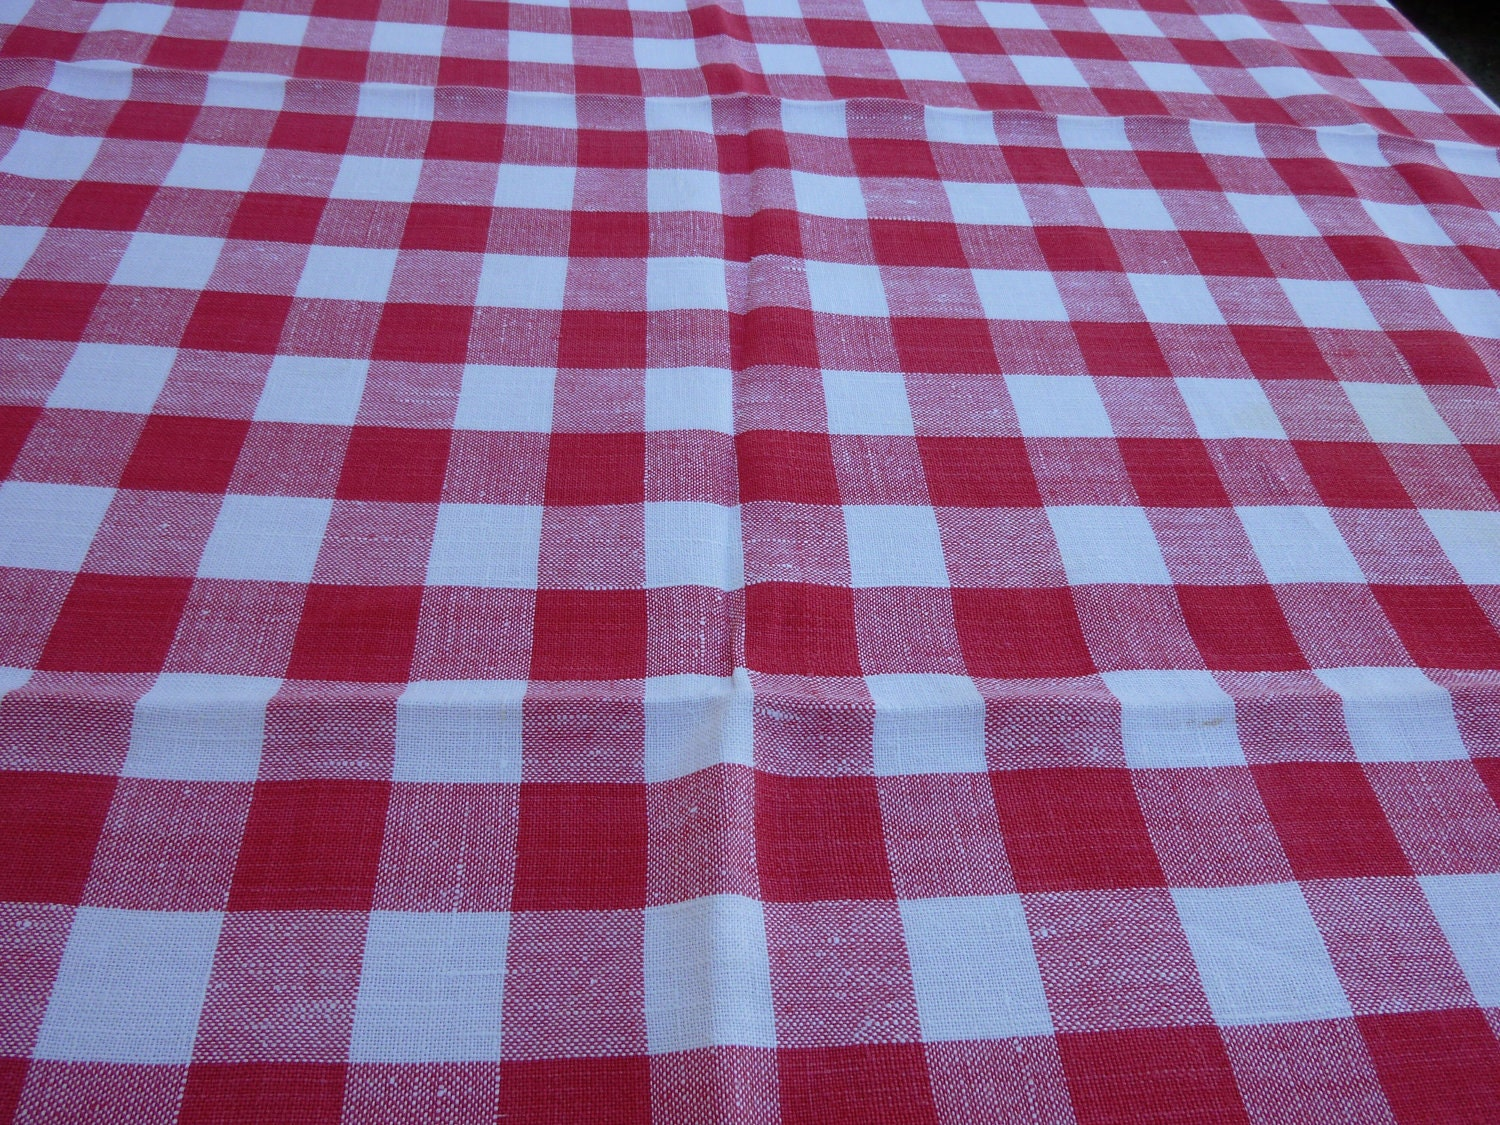 Exceptional Red Checkered Vintage Picnic Tablecloth Classic Italian